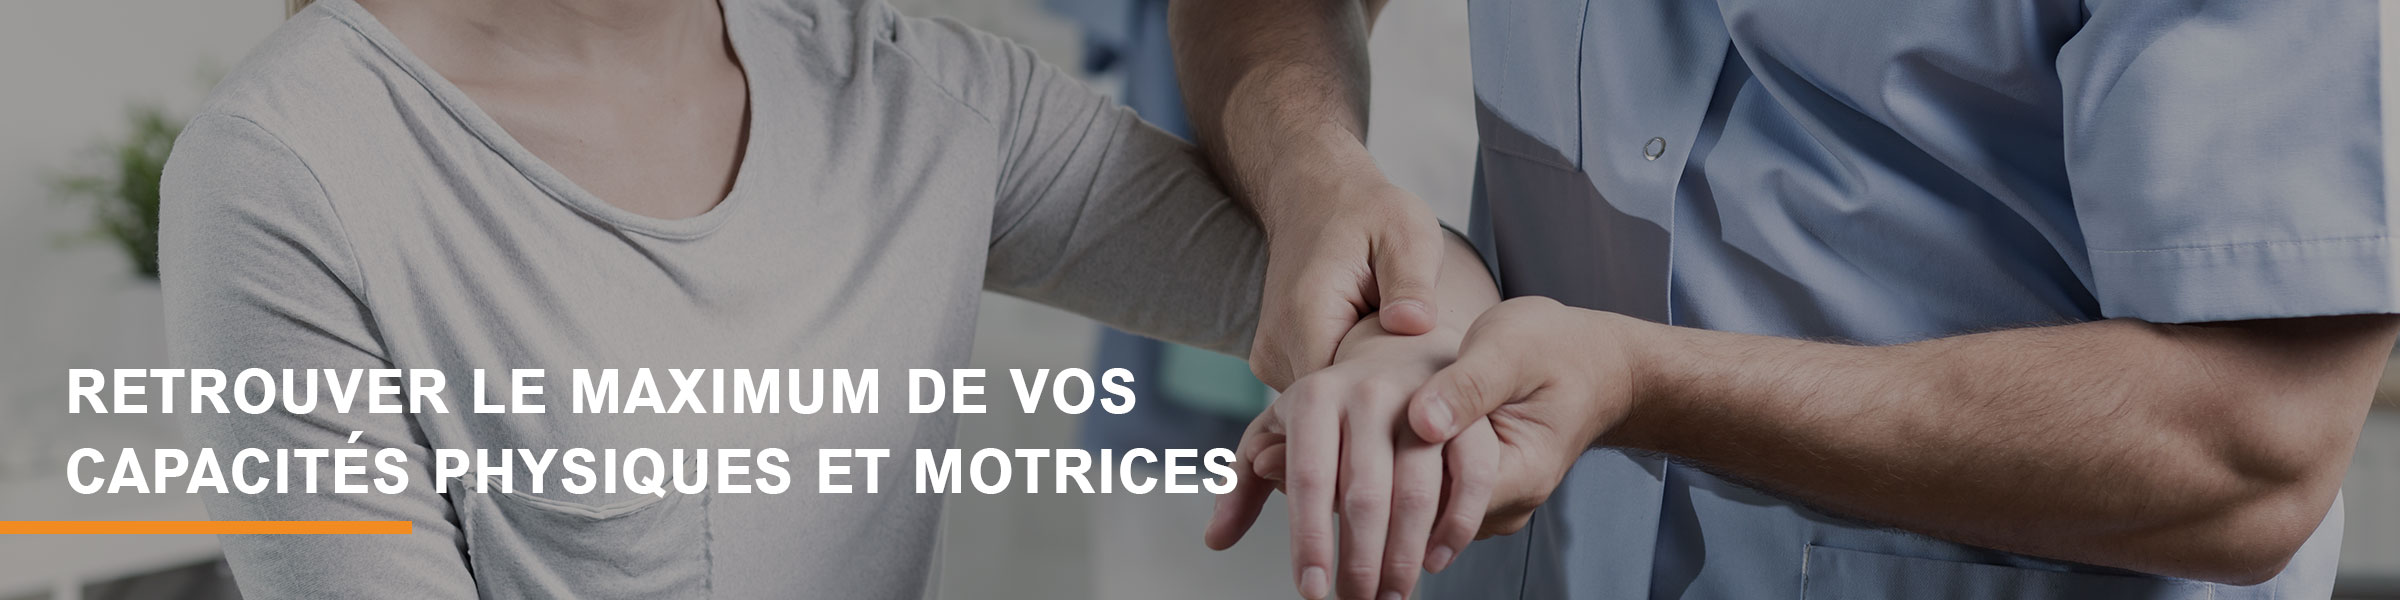 https://cliniquepraxis.ca/wp-content/uploads/2020/10/physiotherapeuthe-avec-patiente.jpg